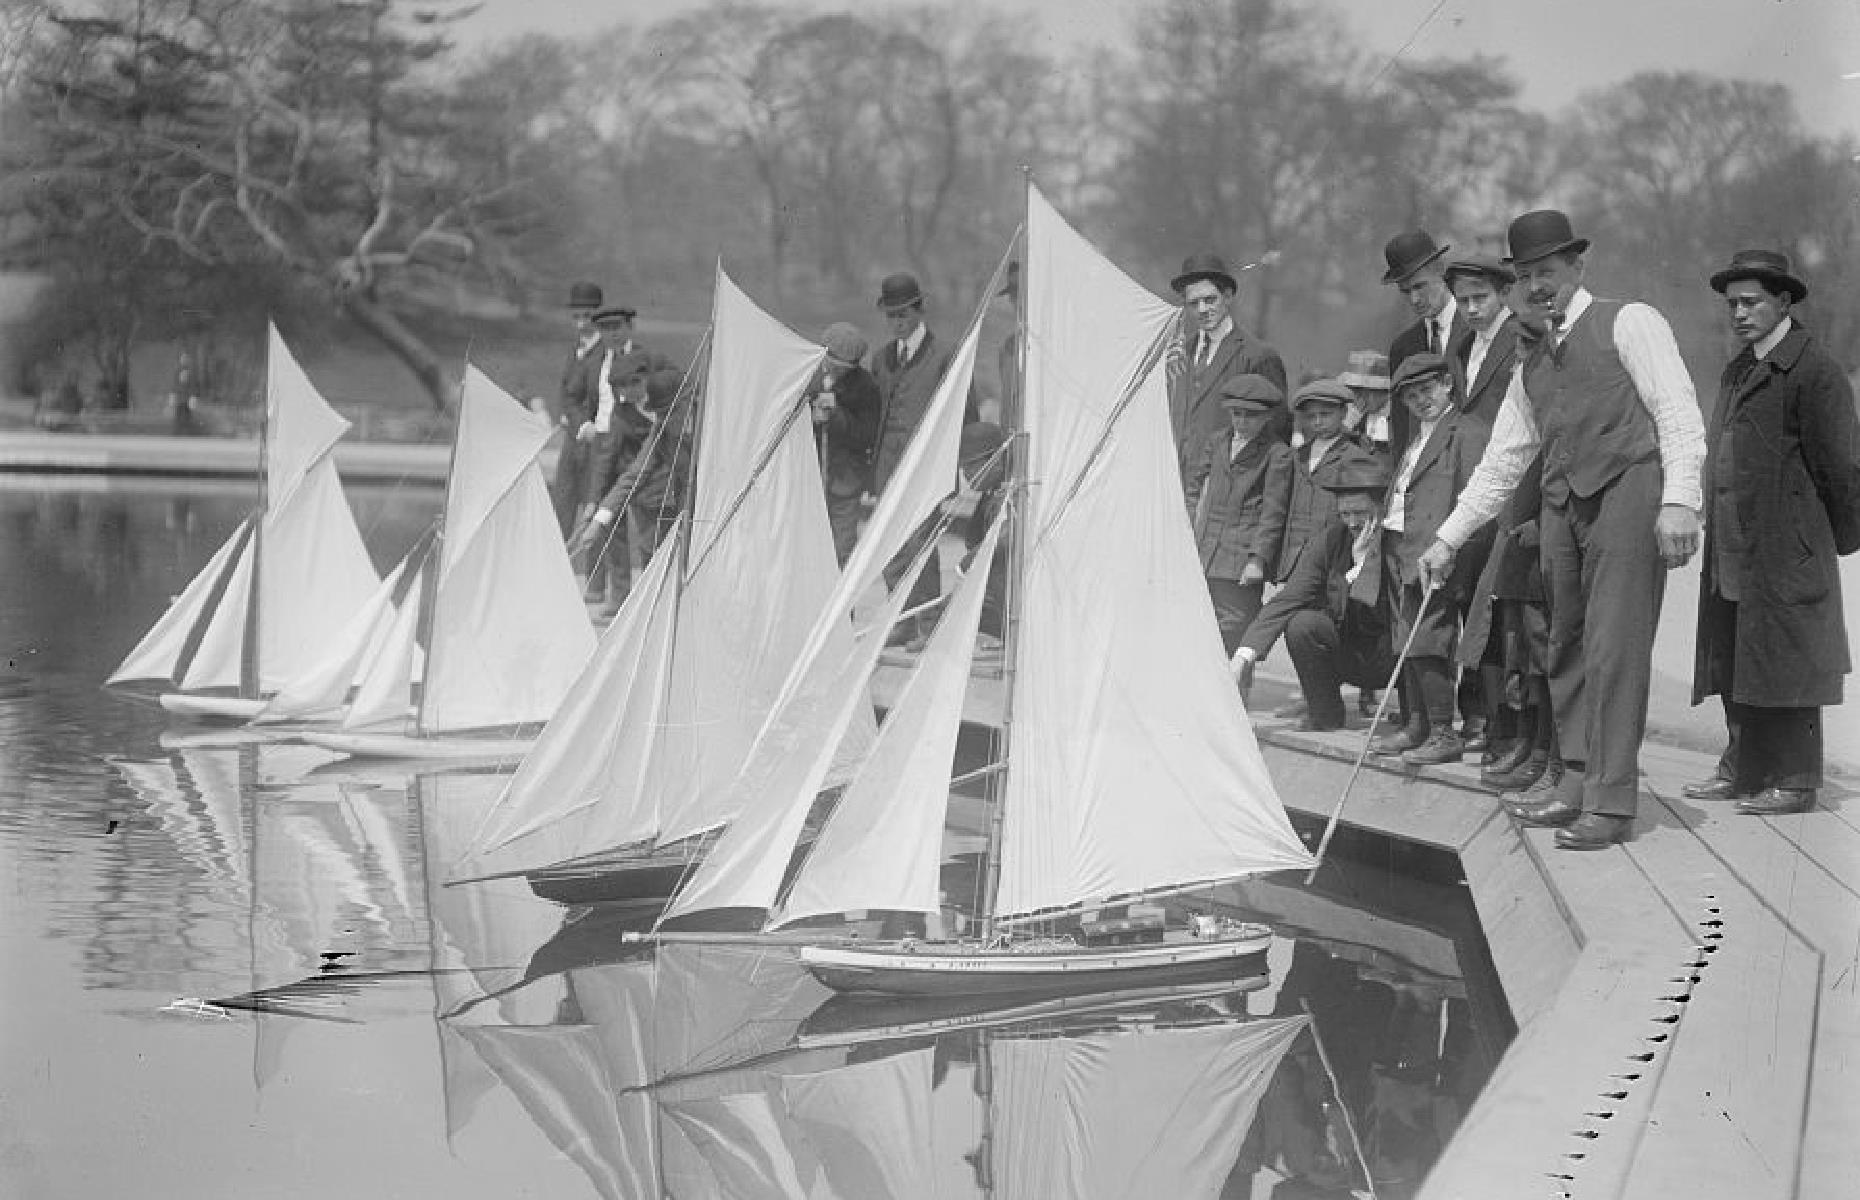 Slide 21 of 47: There's a long history of model yacht racing in Central Park too – in fact, the Central Park Model Yacht Club celebrated its 100th birthday back in 2016. The sport became particularly popular from the 1880s and remains so today –competitors are pictured here around 1910, getting ready to race their yachts on Conservatory Lake.